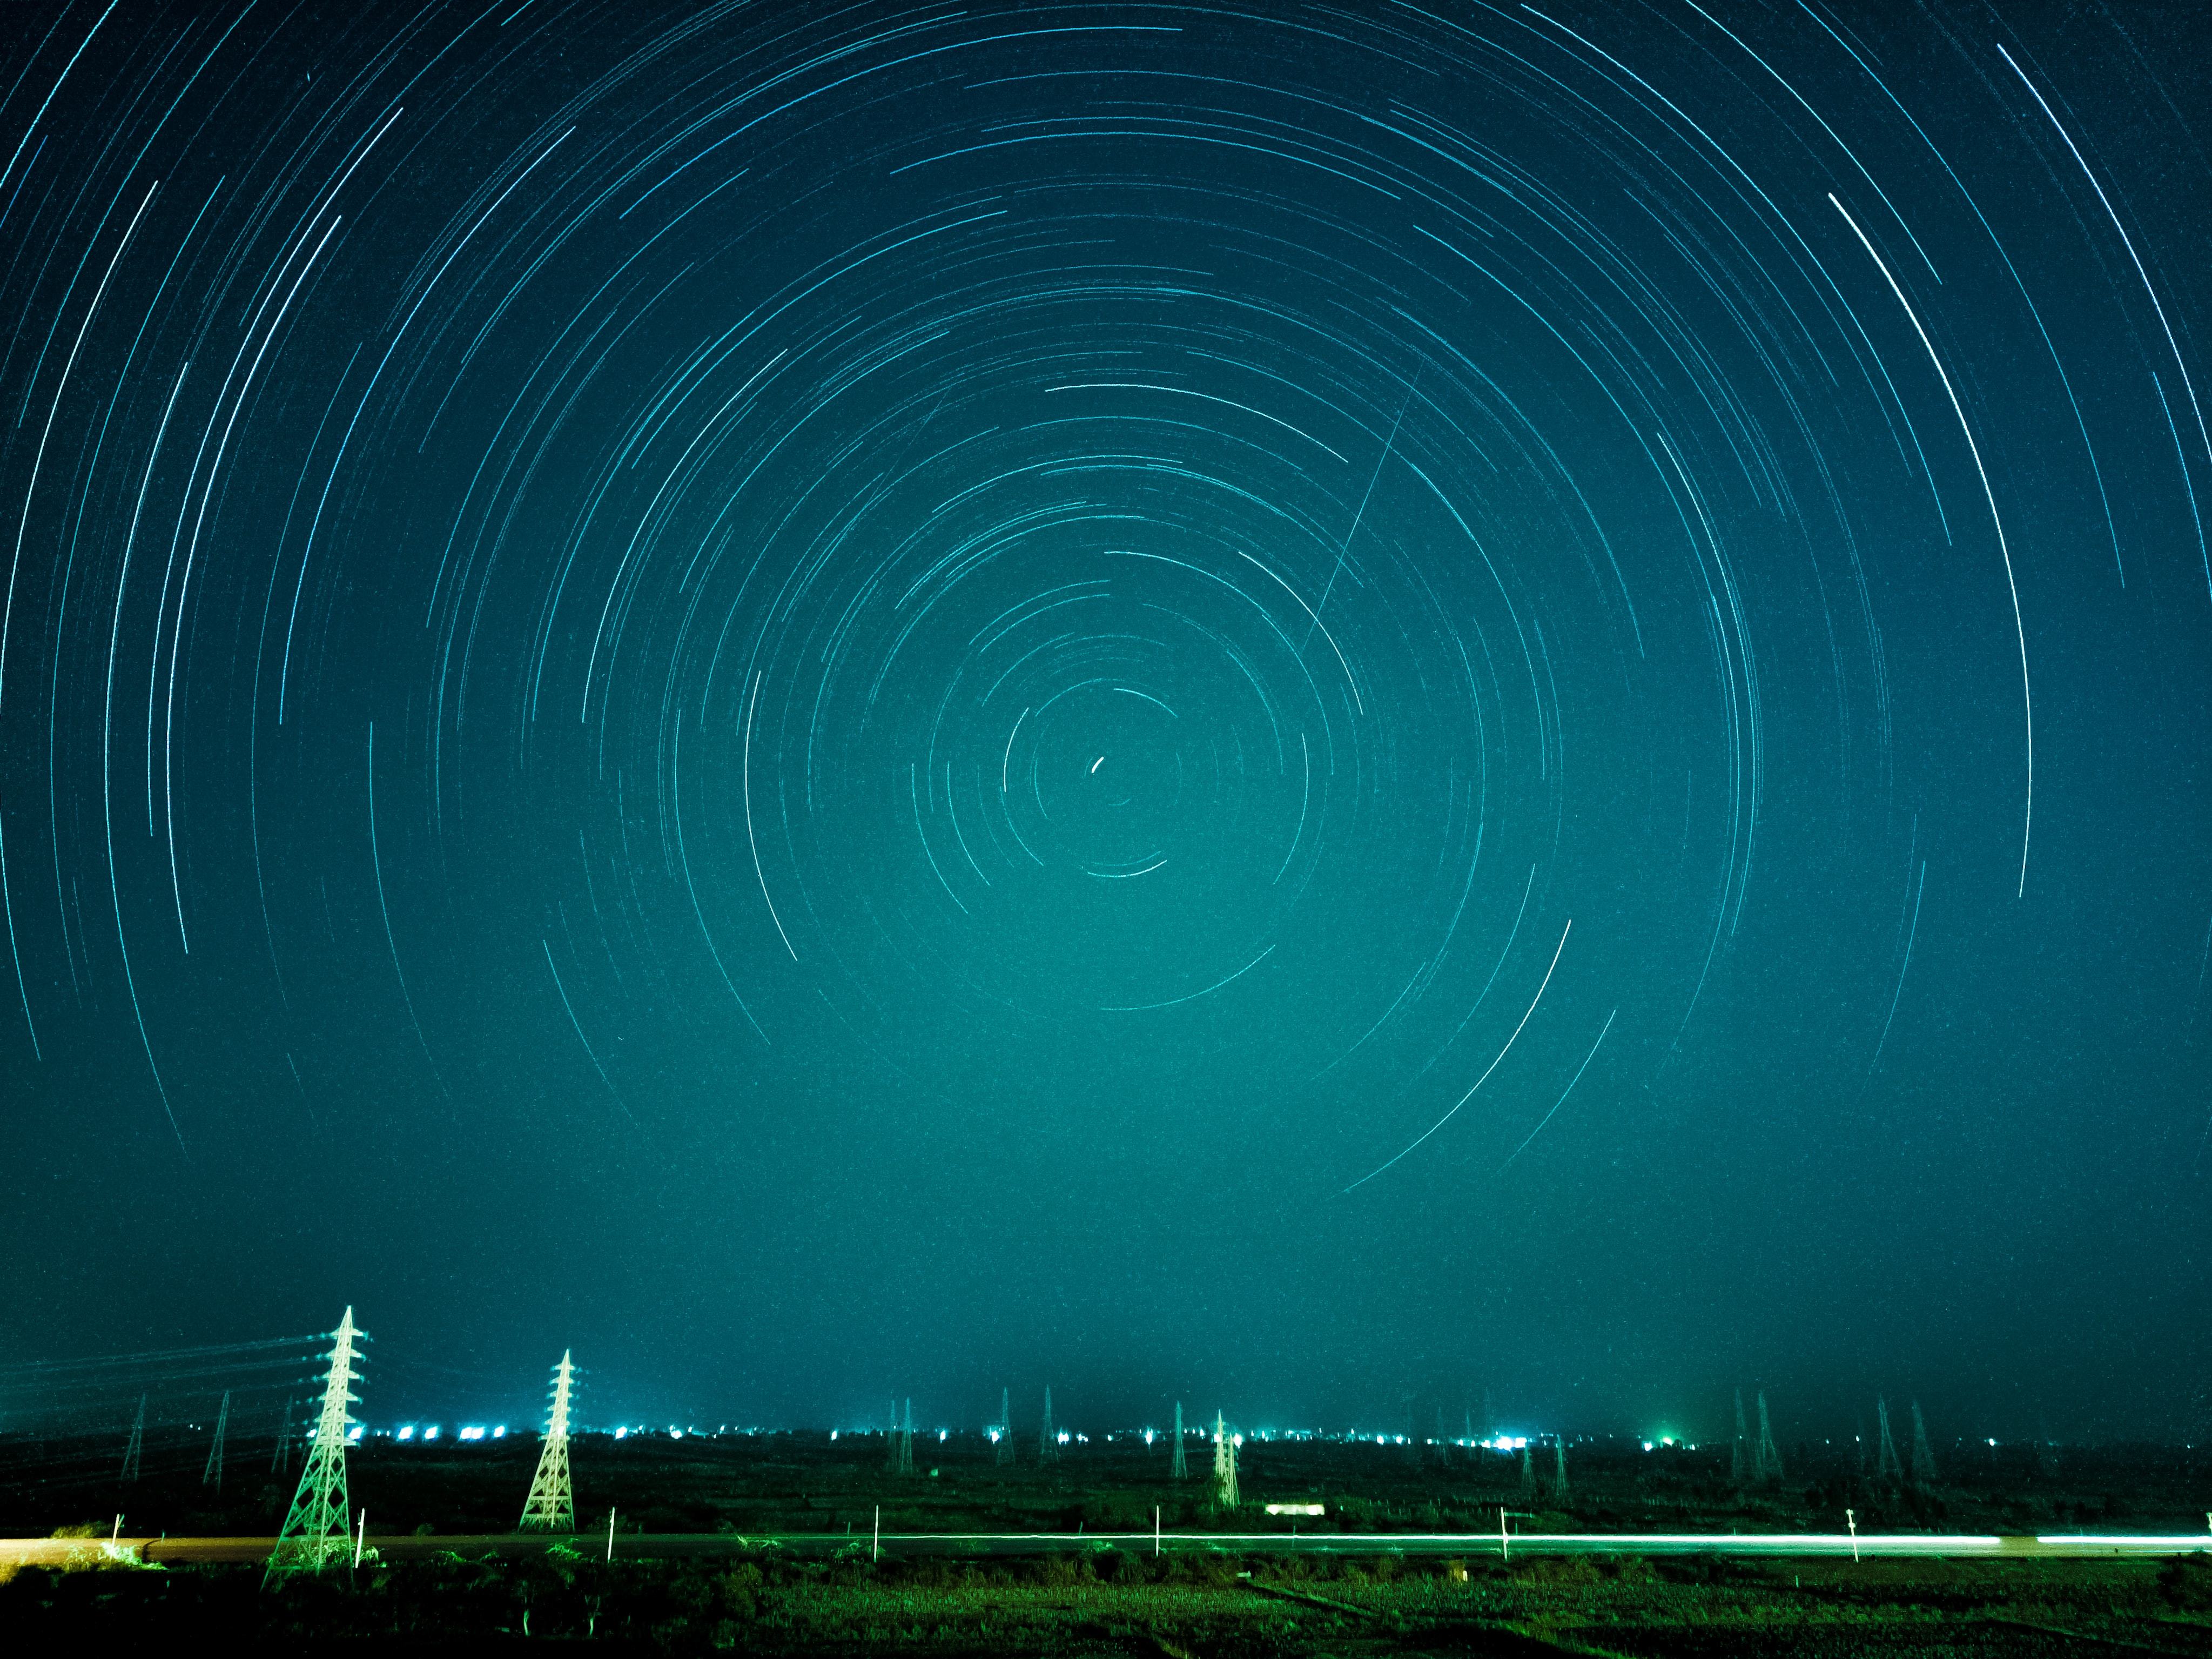 time-lapse photograph of stars